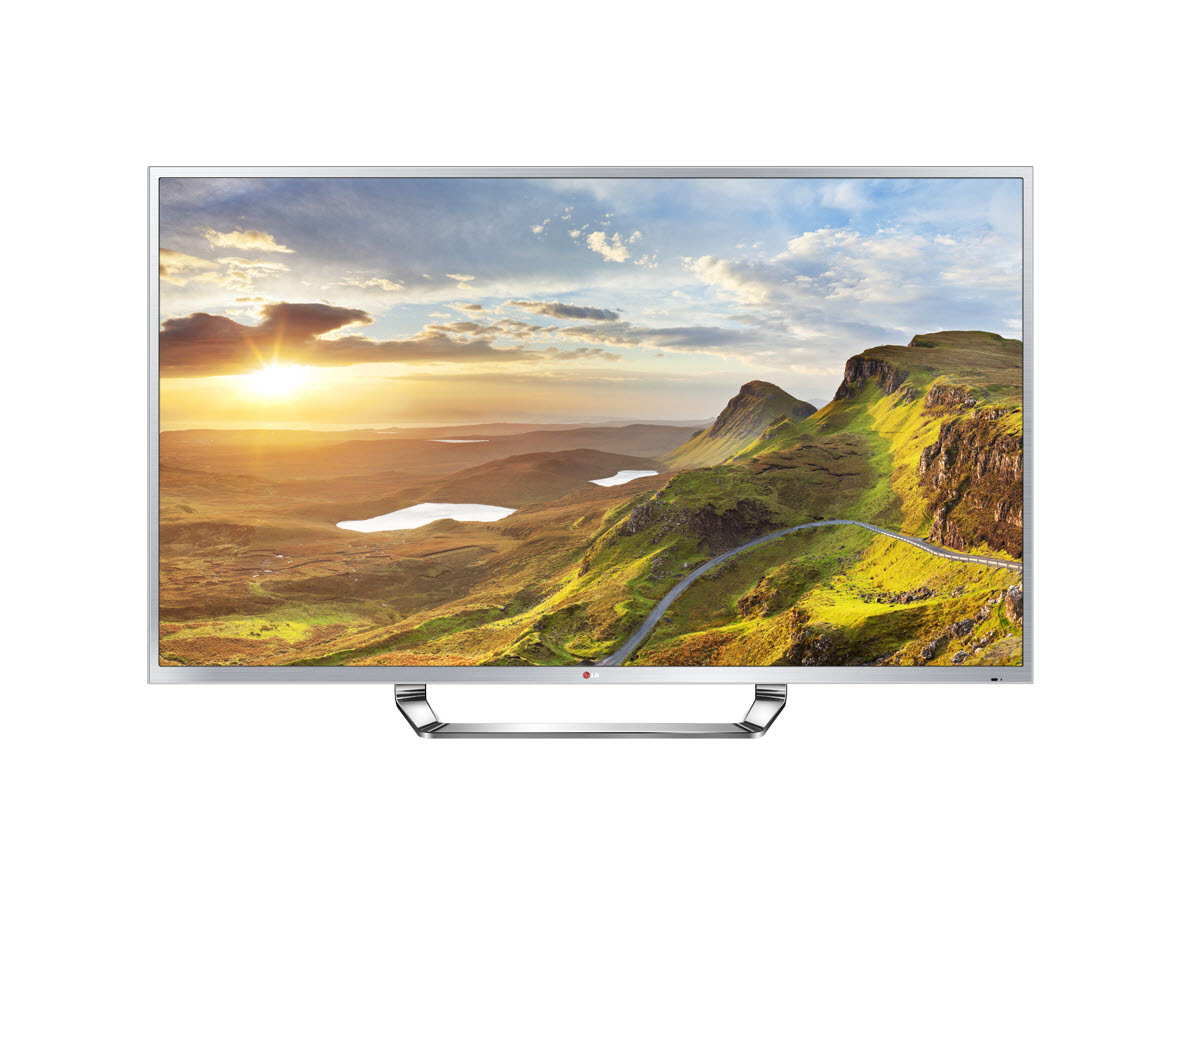 A front view of the LG Ultra HD CINEMA 3D Smart TV (model 84LM9600)